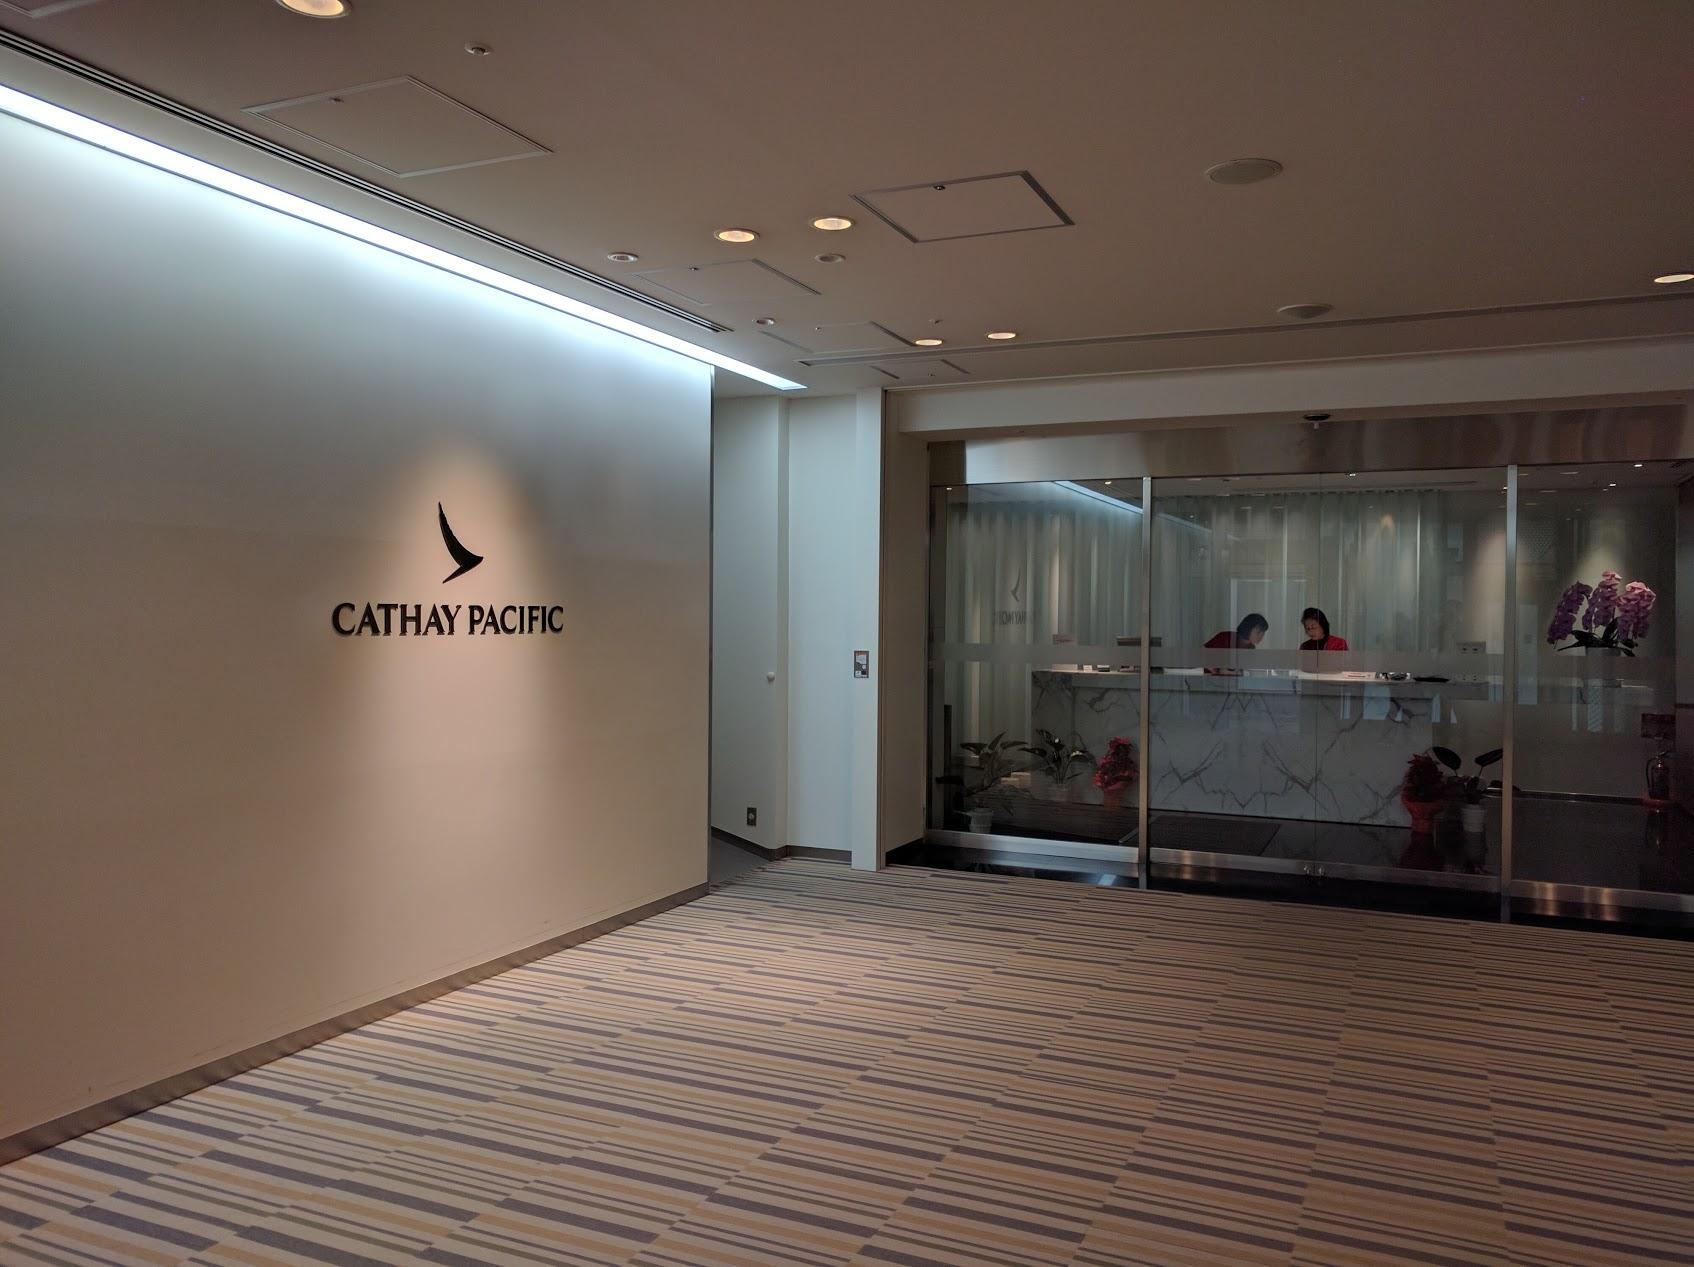 Narita Cathay Pacific lounge